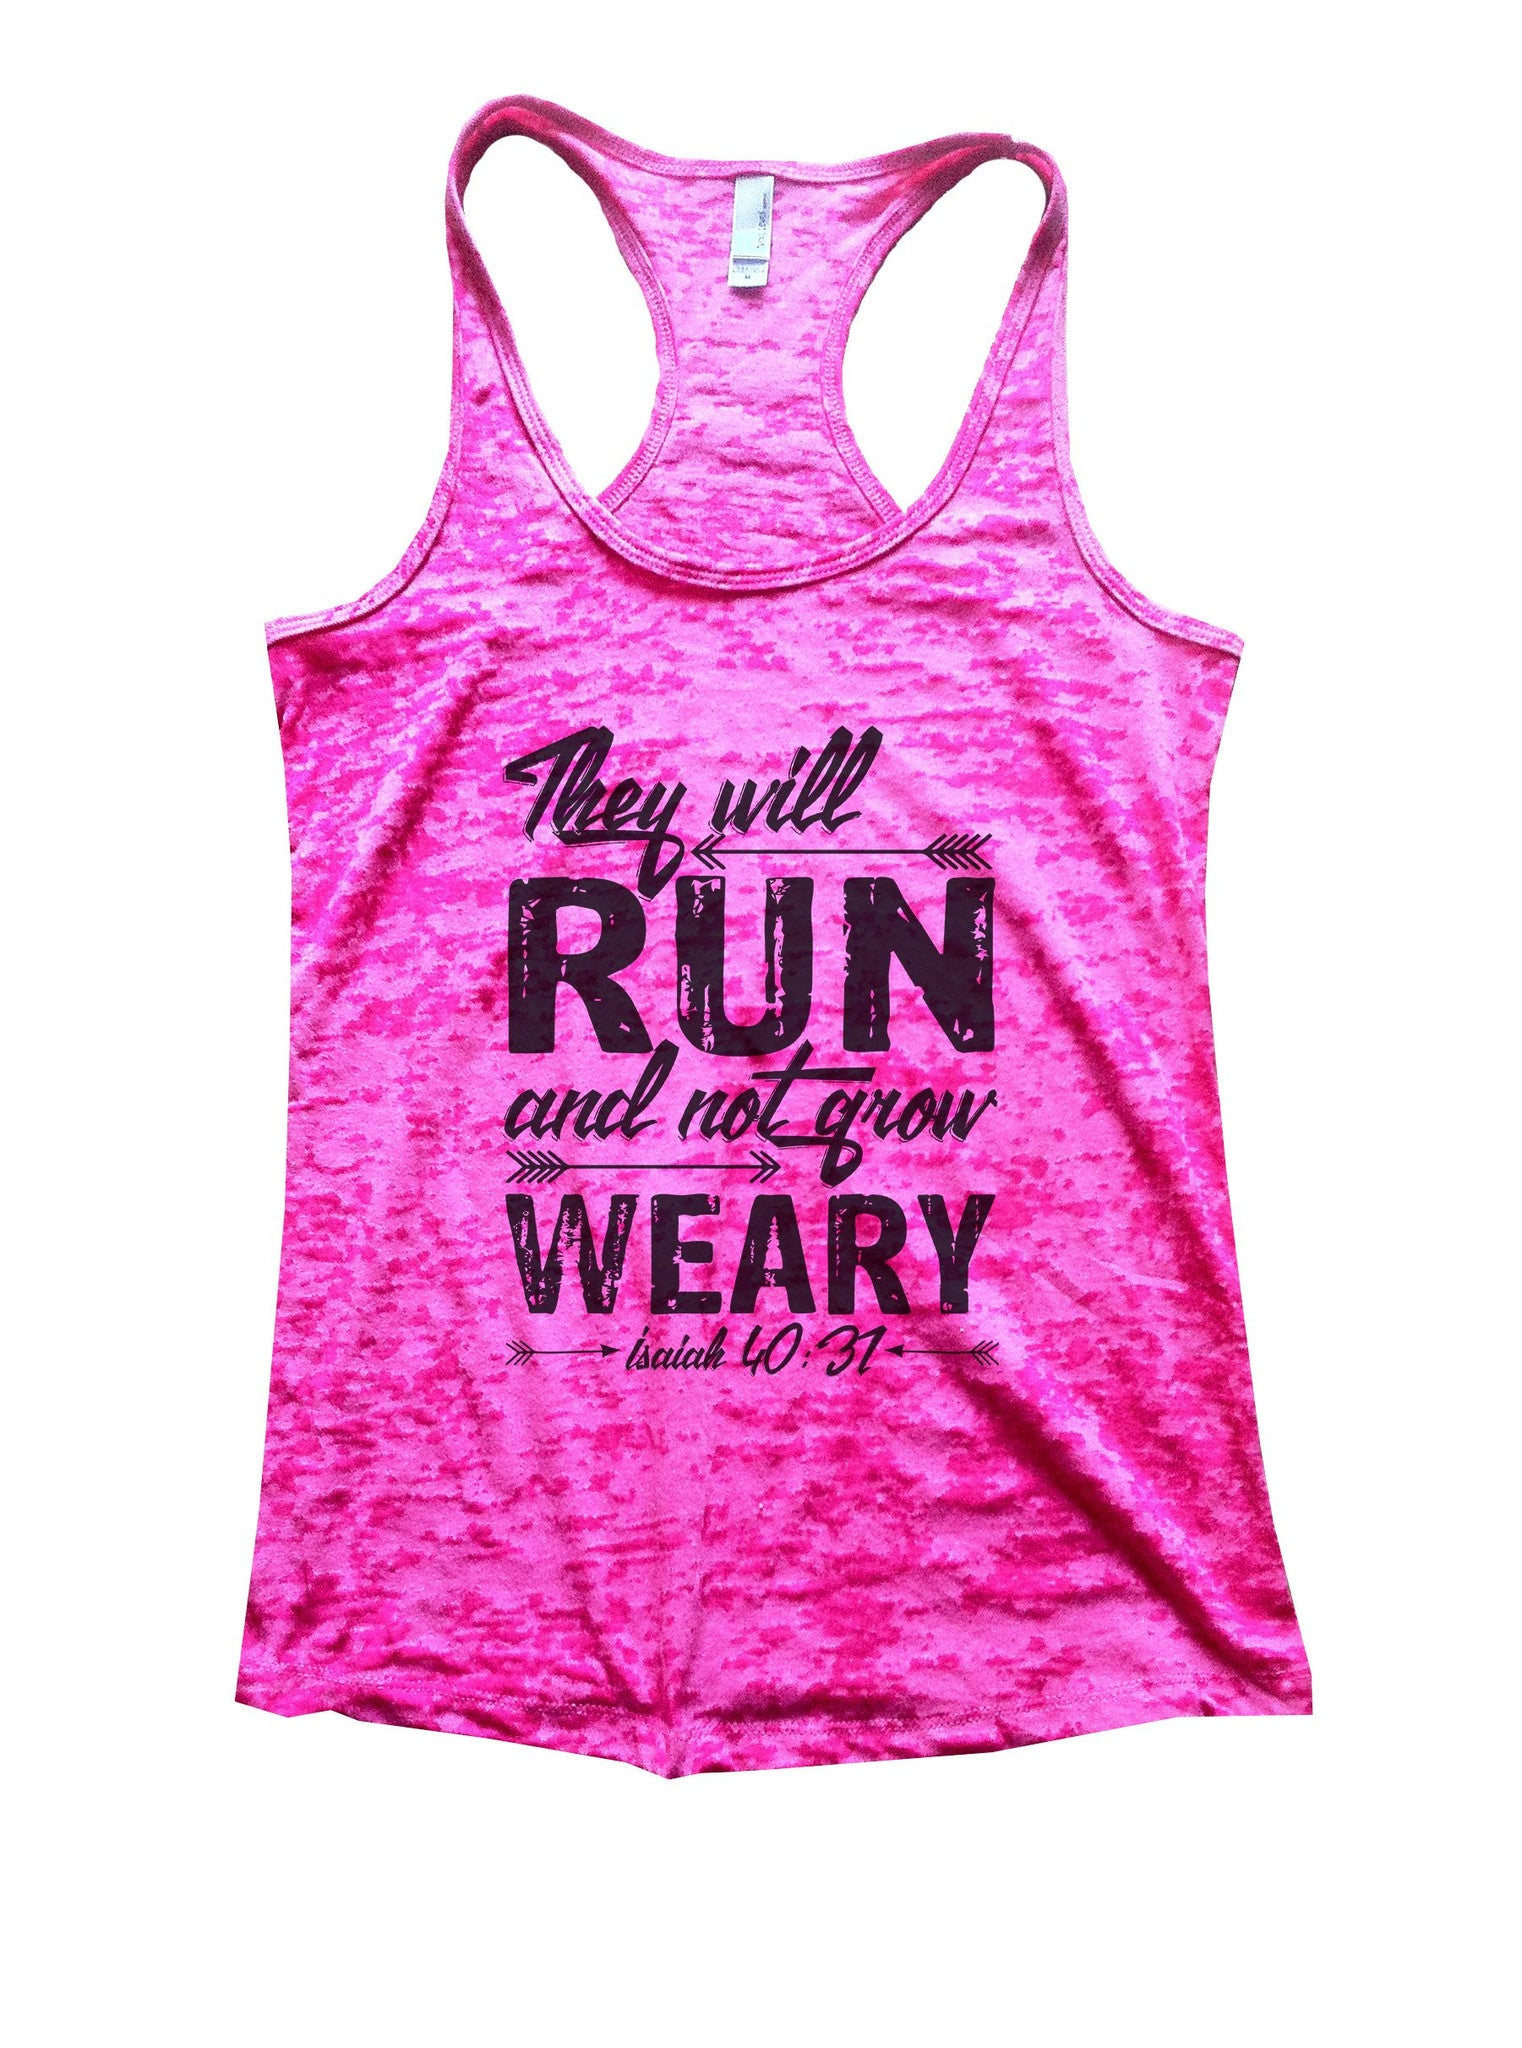 They Will Run And Not Grow Weary Isaiah 40:31 Burnout Tank Top By BurnoutTankTops.com - 1075 - Funny Shirts Tank Tops Burnouts and Triblends  - 5